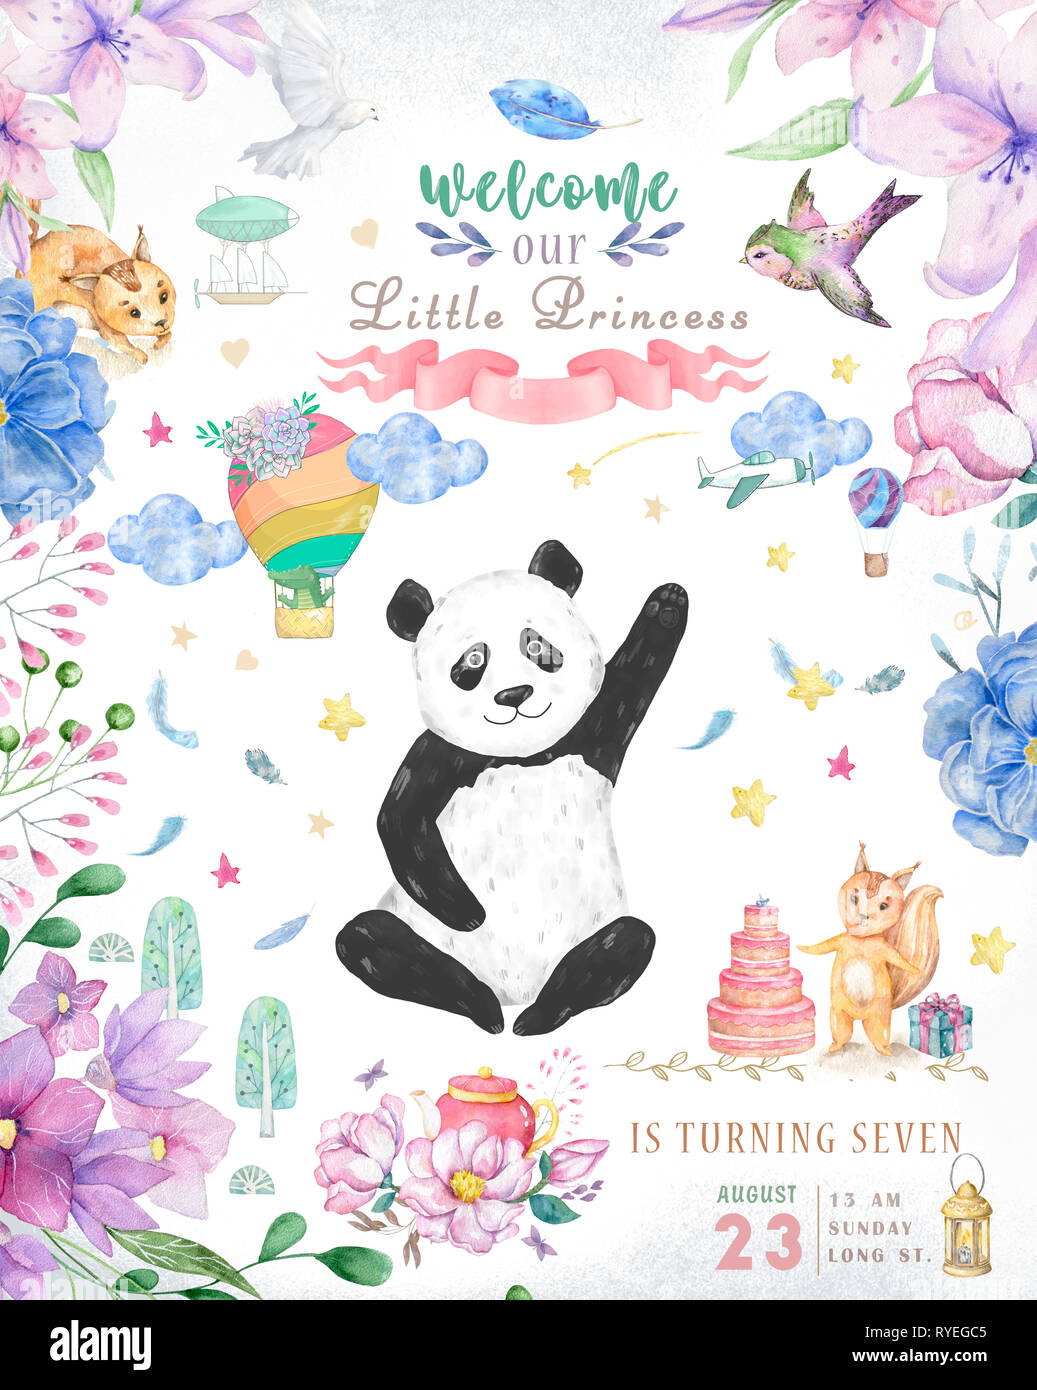 Giant panda Happy Birthday to You Wish Clip art - Happy Birthday Png png  download - 791*455 - Free Transparent Giant Panda png Download. - Clip Art  Library